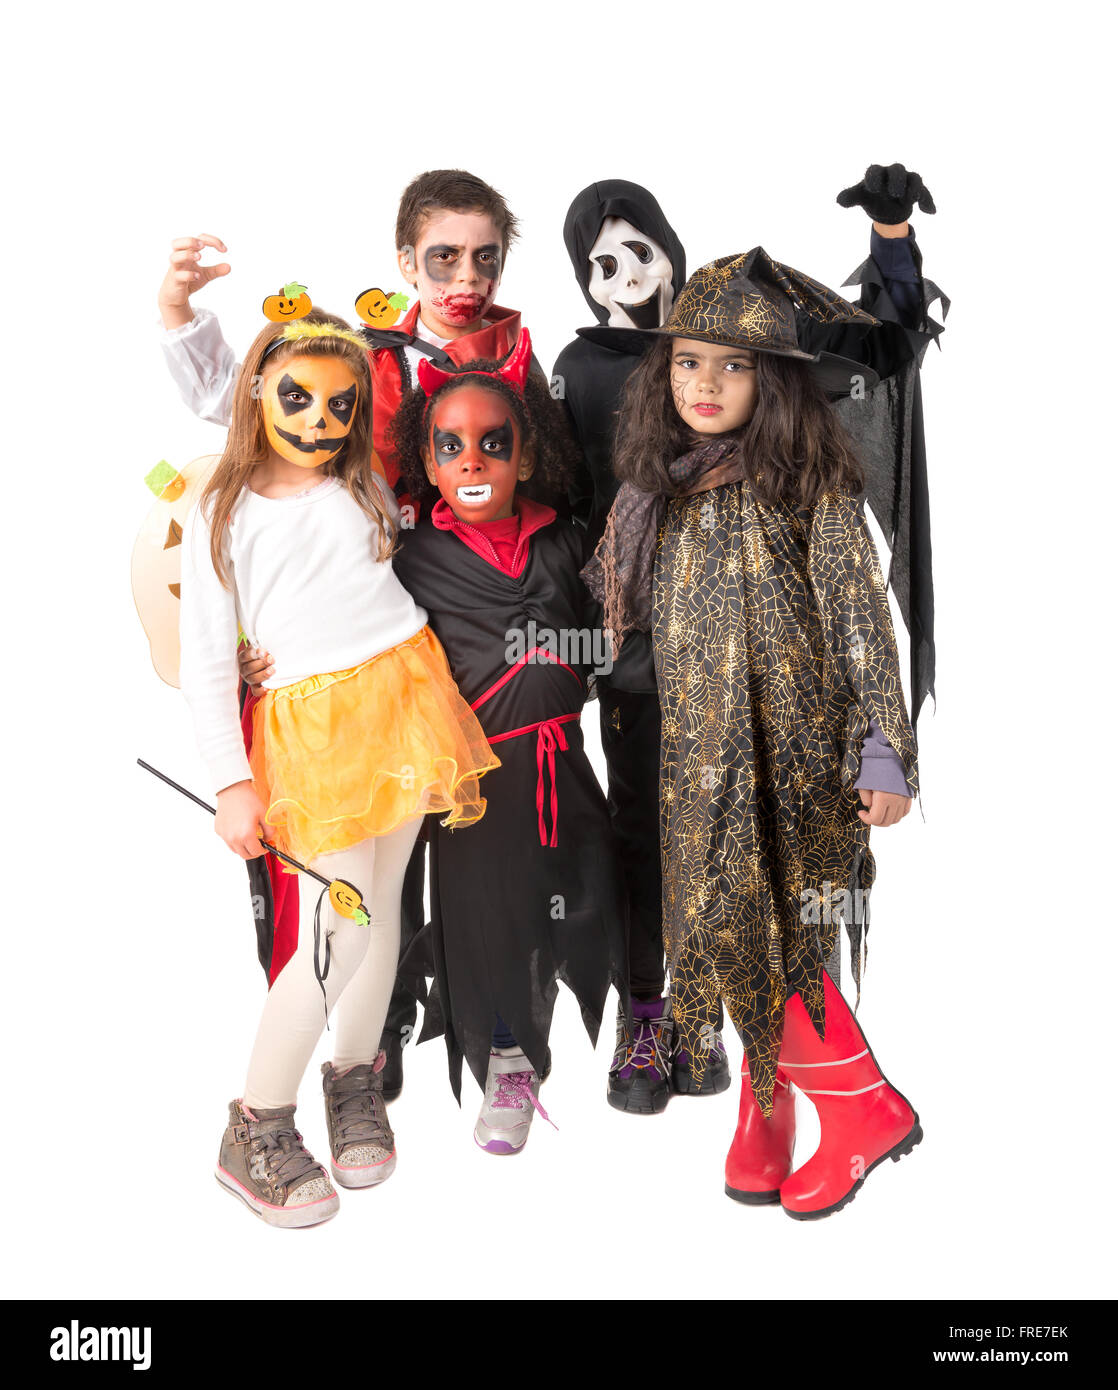 Group of kids with face-paint and Halloween costumes  sc 1 st  Alamy & Group of kids with face-paint and Halloween costumes Stock Photo ...